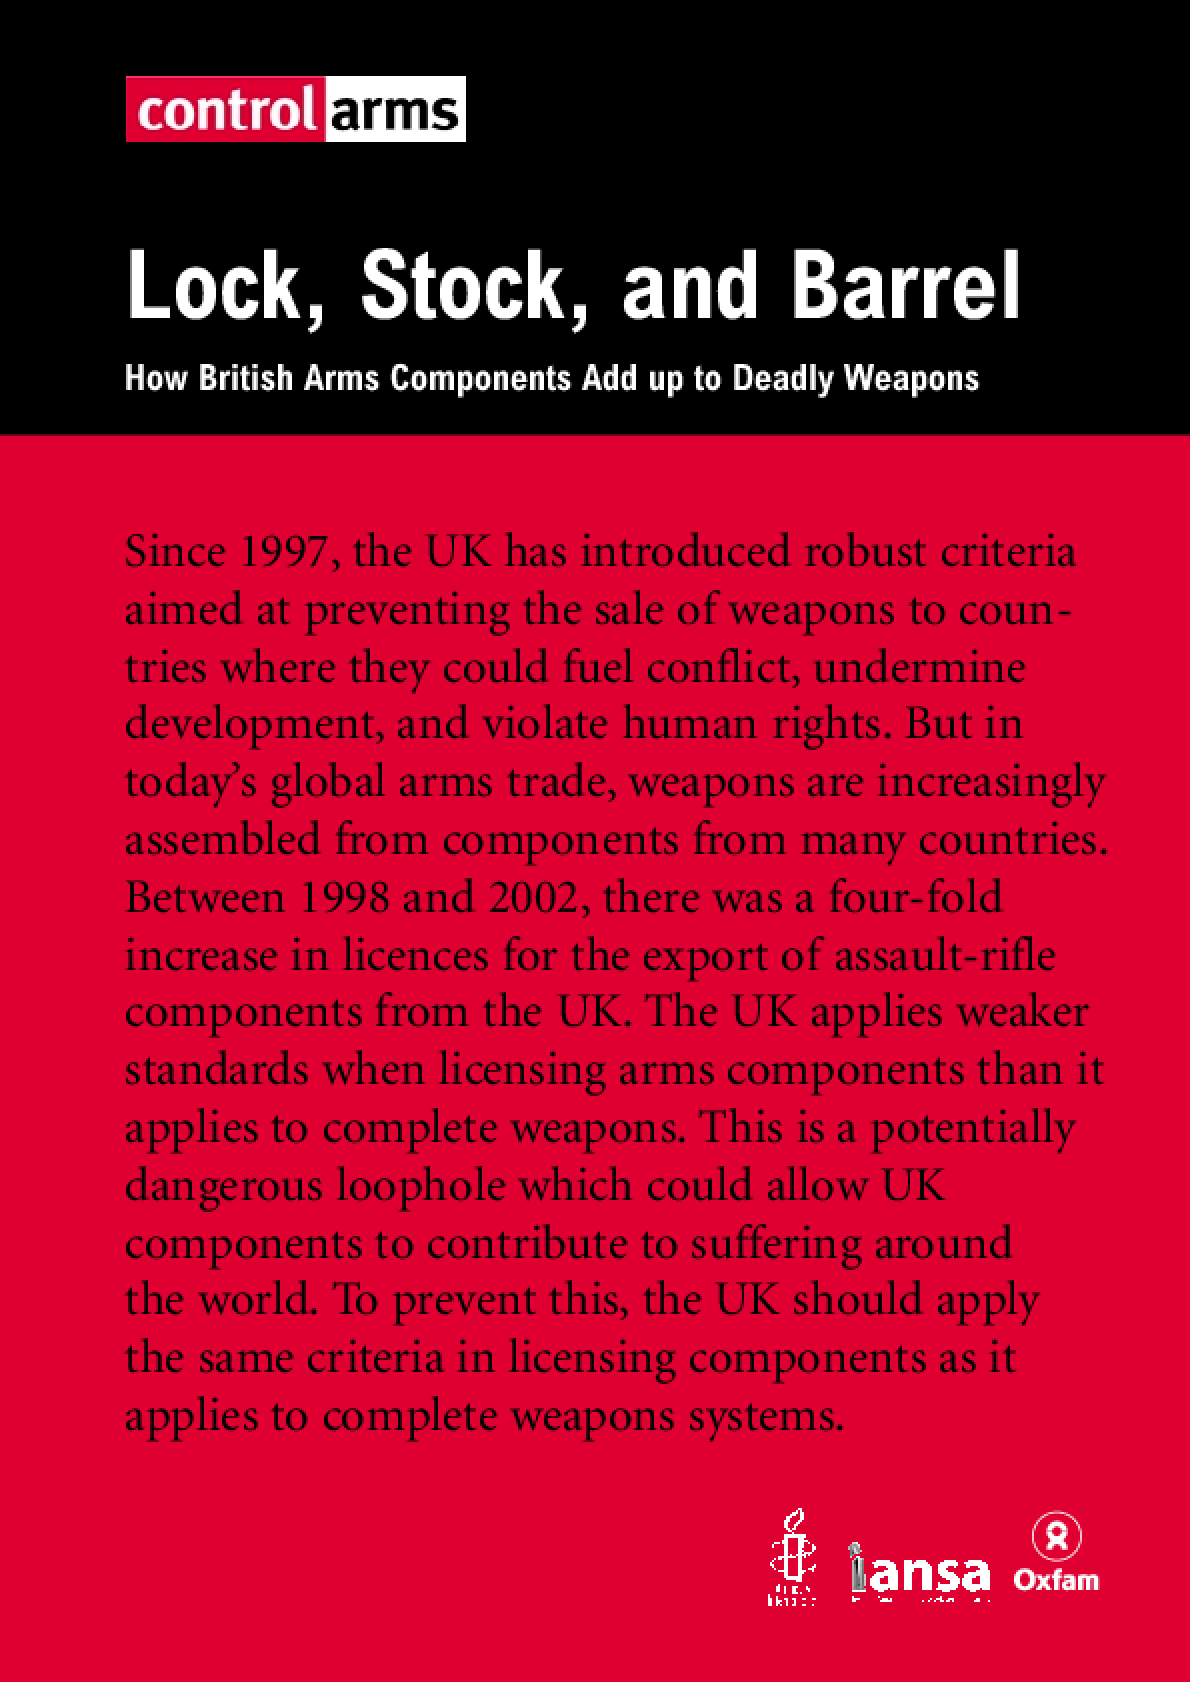 Lock, Stock and Barrel: How British arm components add up to deadly weapons